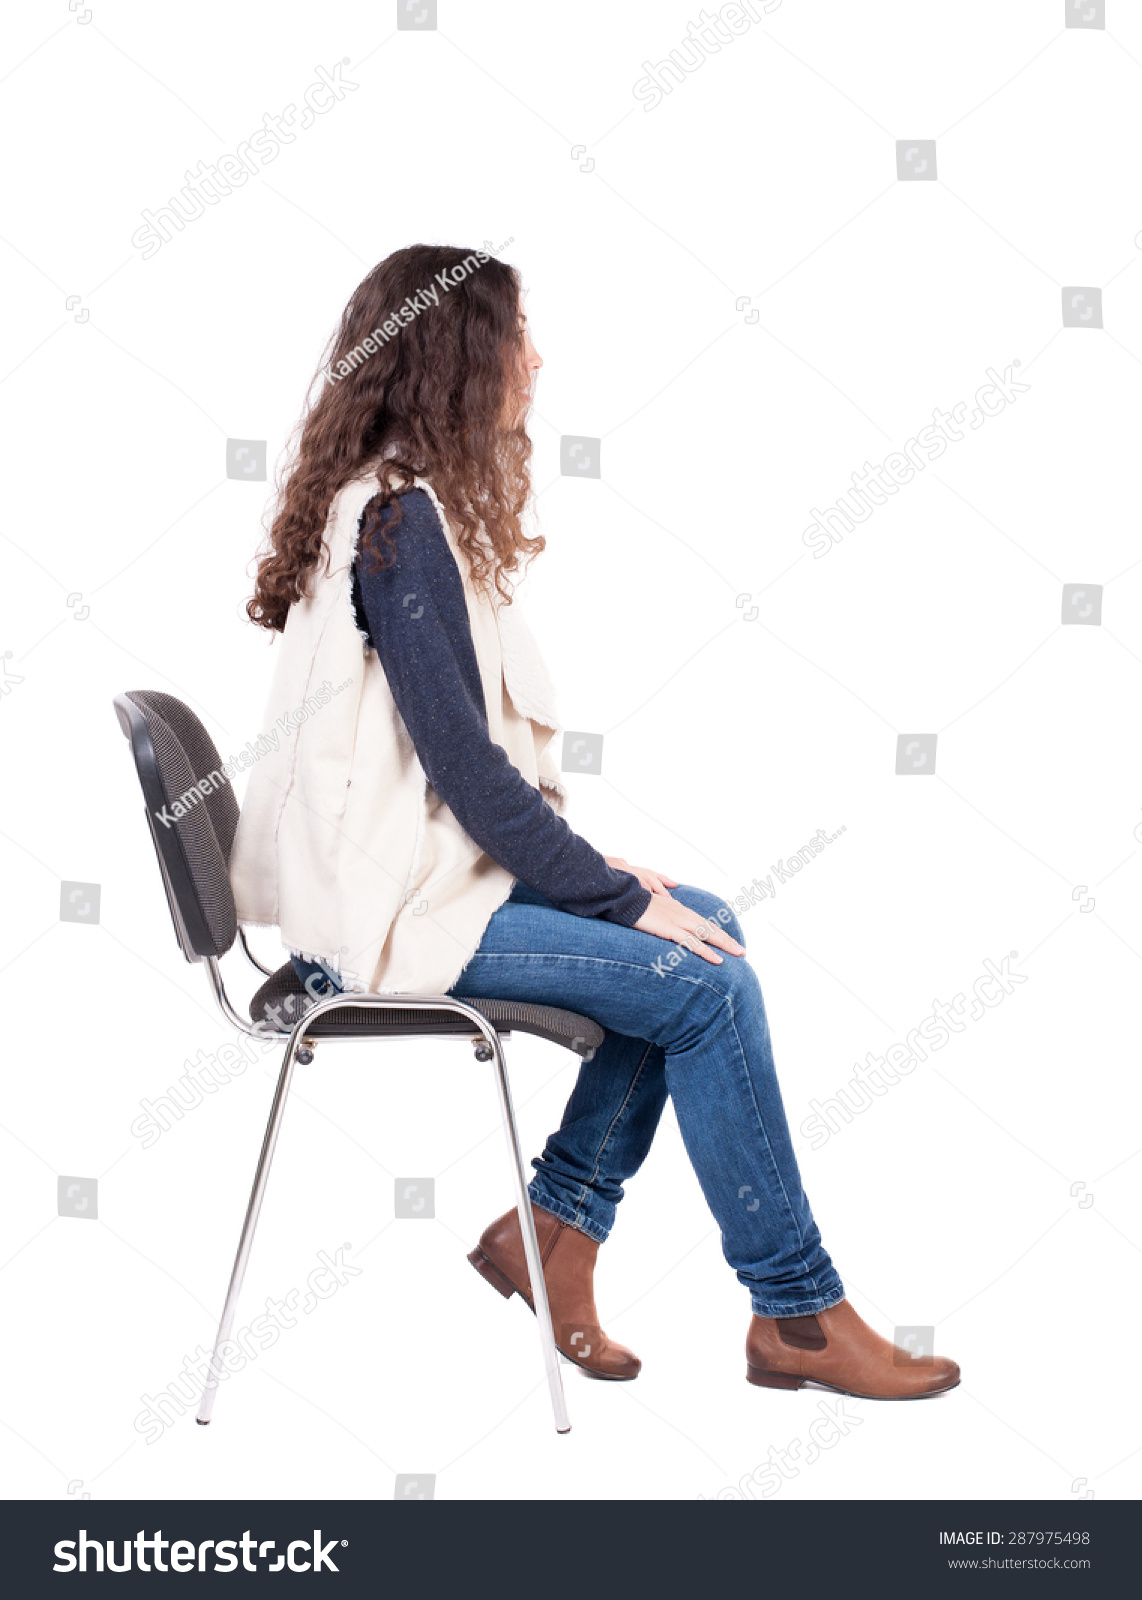 Person sitting on bench side view people sitting stock photos images